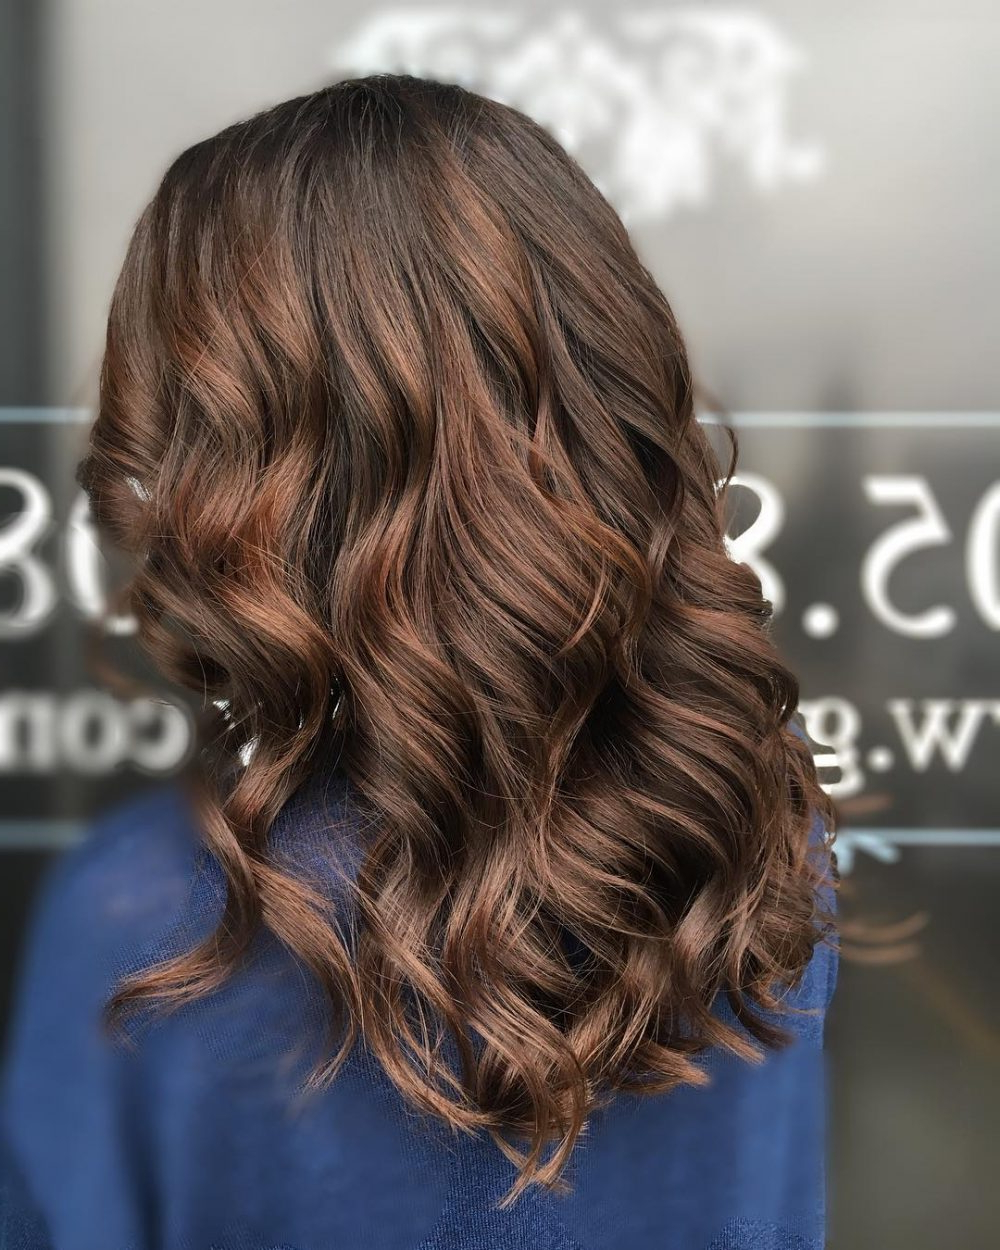 34 Sweetest Caramel Highlights On Light To Dark Brown Hair (2019) Within Most Up To Date Warm Toned Brown Hairstyles With Caramel Balayage (View 2 of 20)